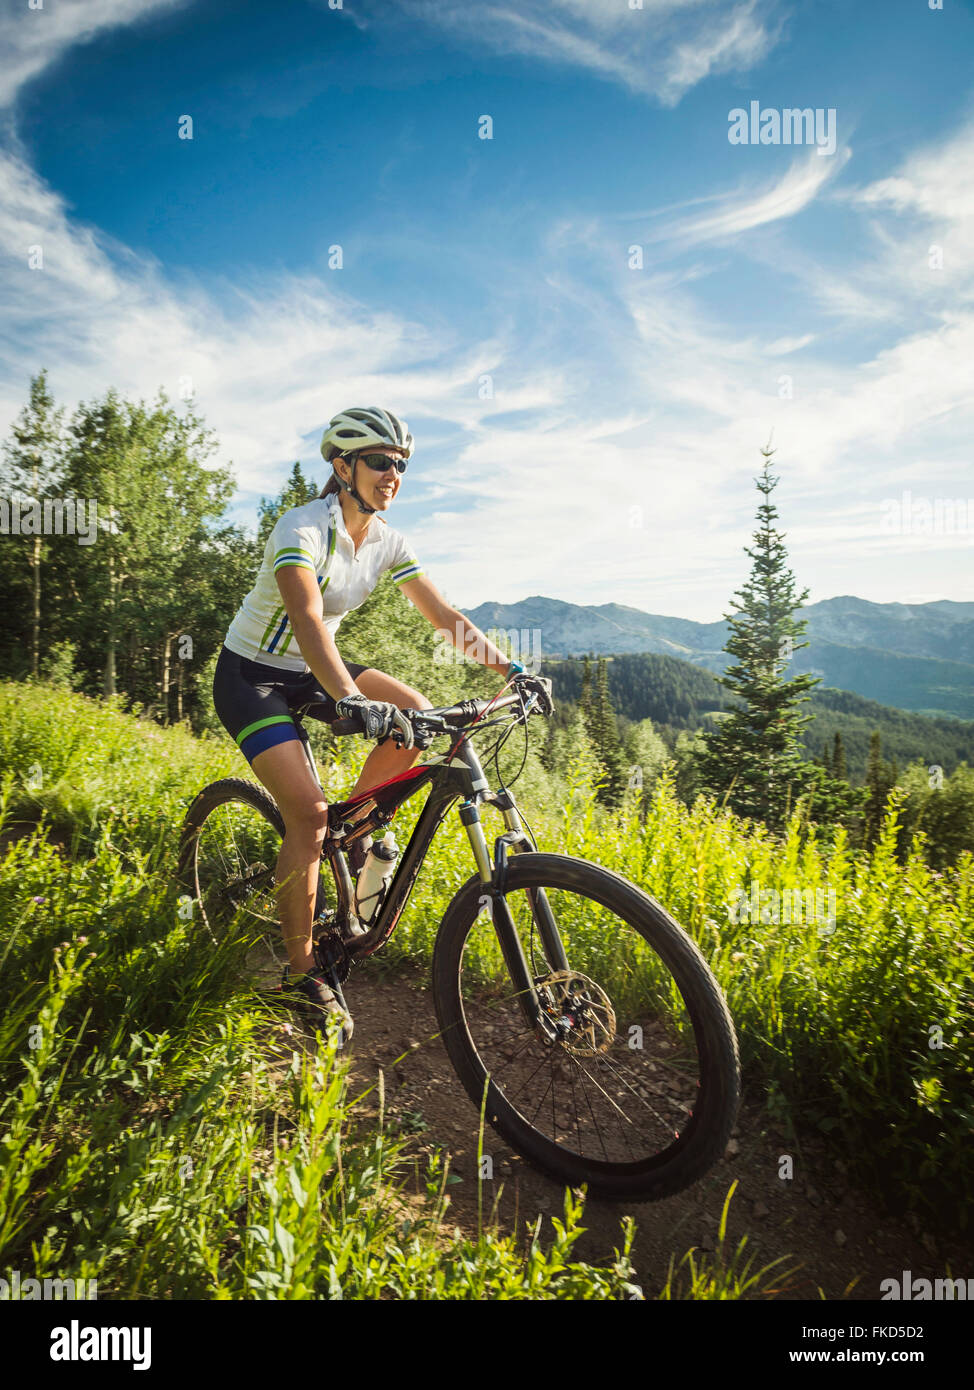 Woman during bicycle trip in mountain scenery - Stock Image